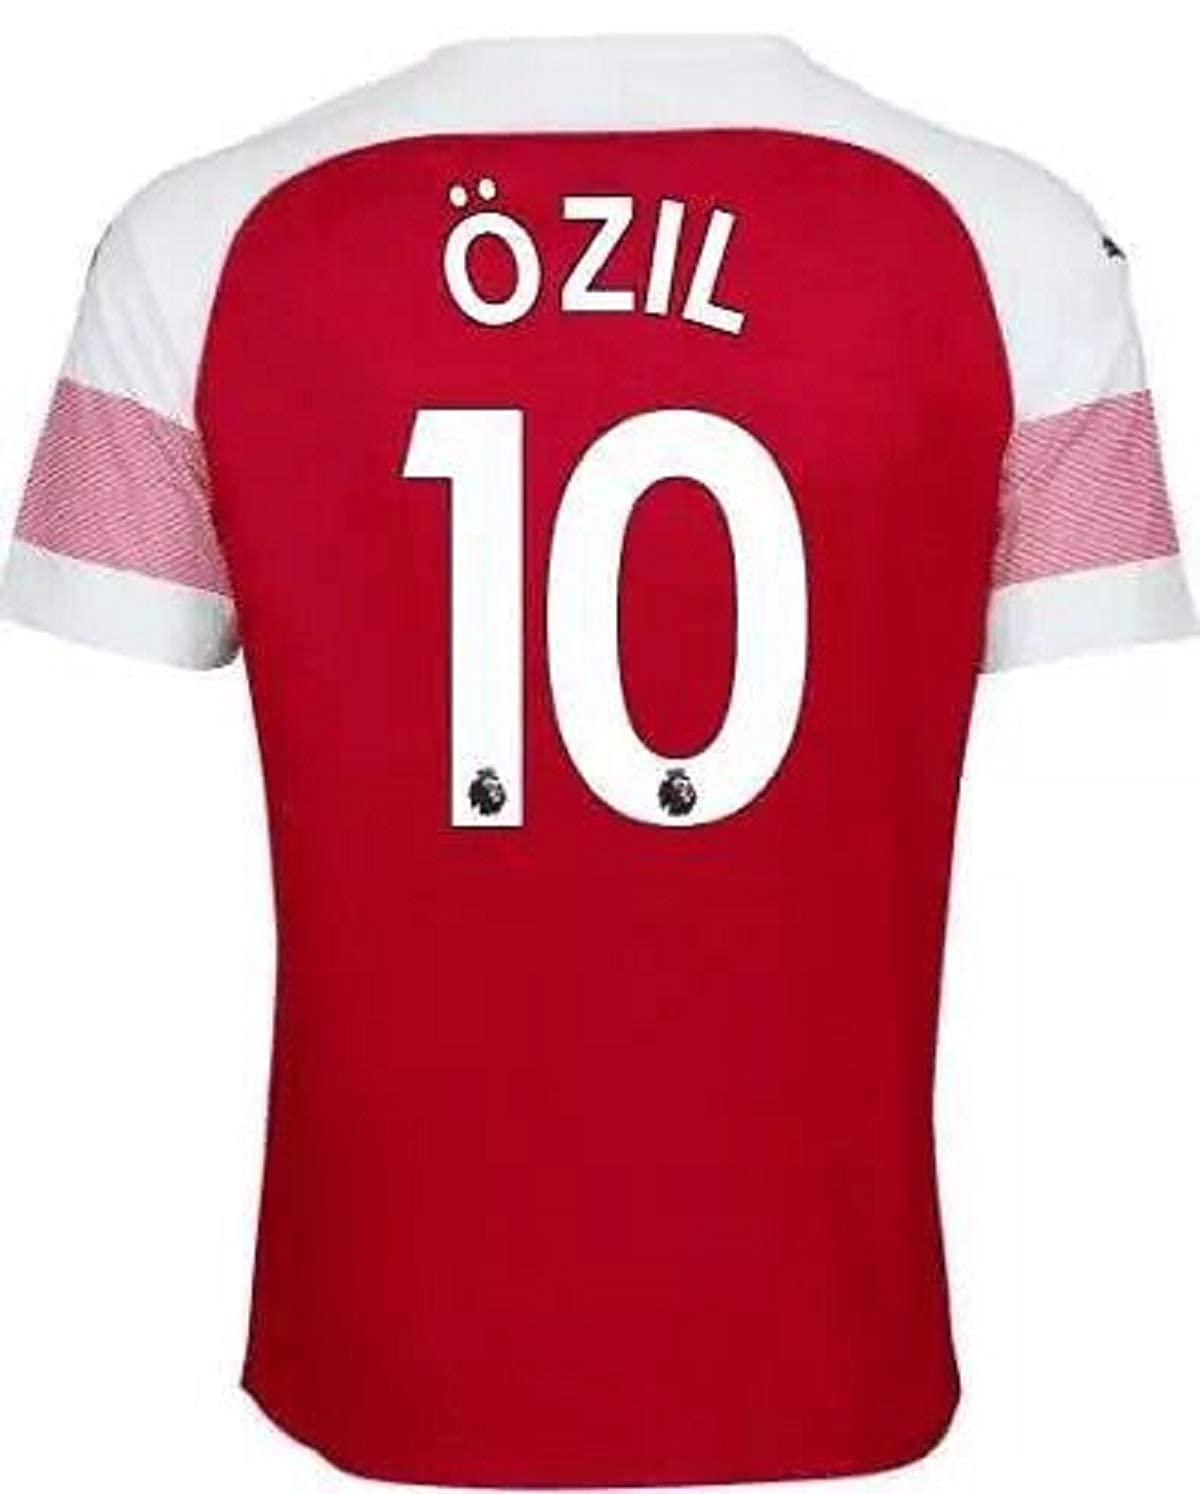 sale retailer ac905 389ff Amazon.com: Men's 18/19 Arsenal Ozil #10 Men's Jersey ...